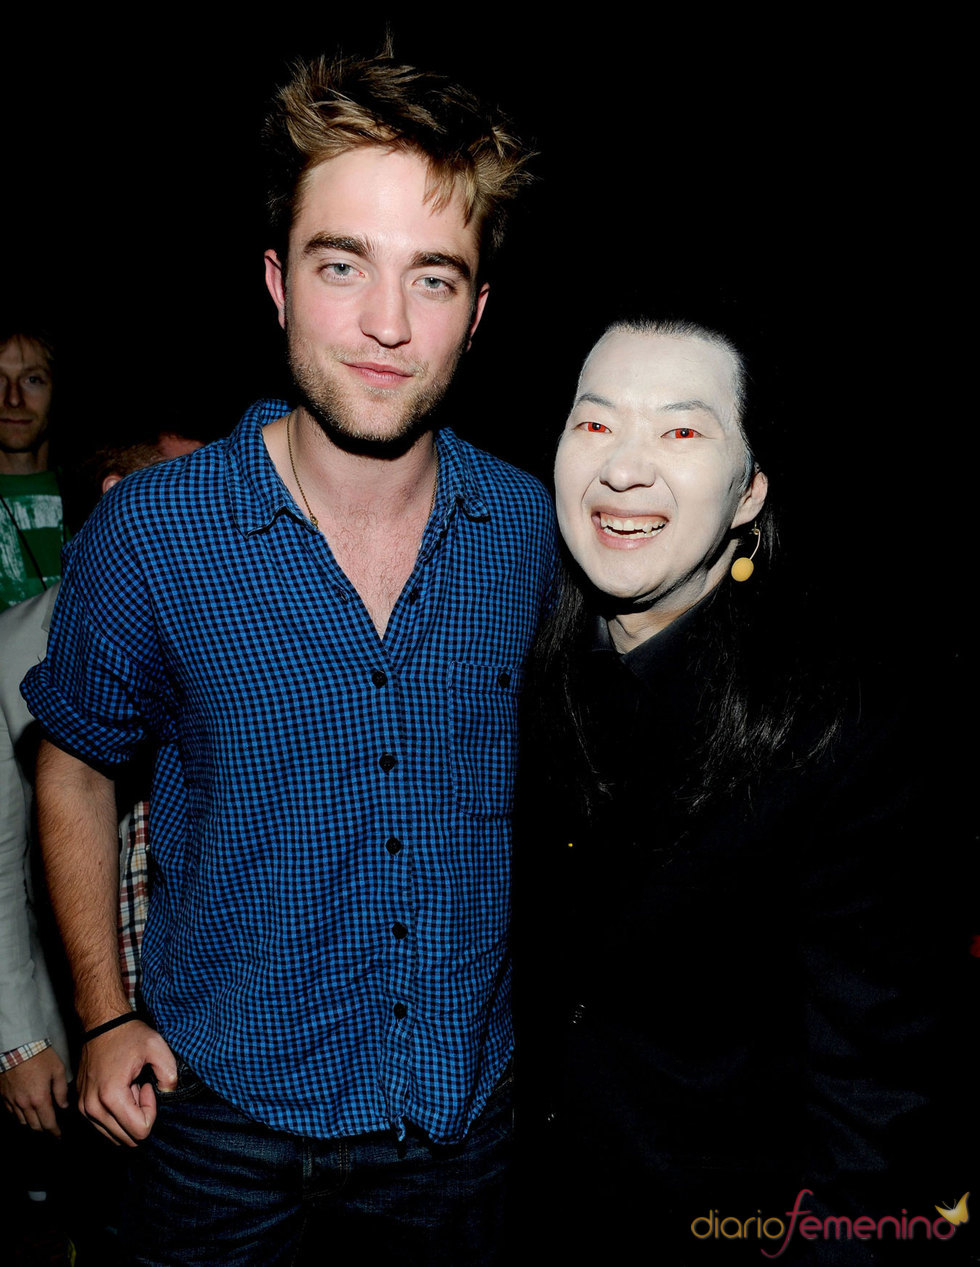 Robert Pattison y Ken Jeong en la gala de los Teen Choice 2010